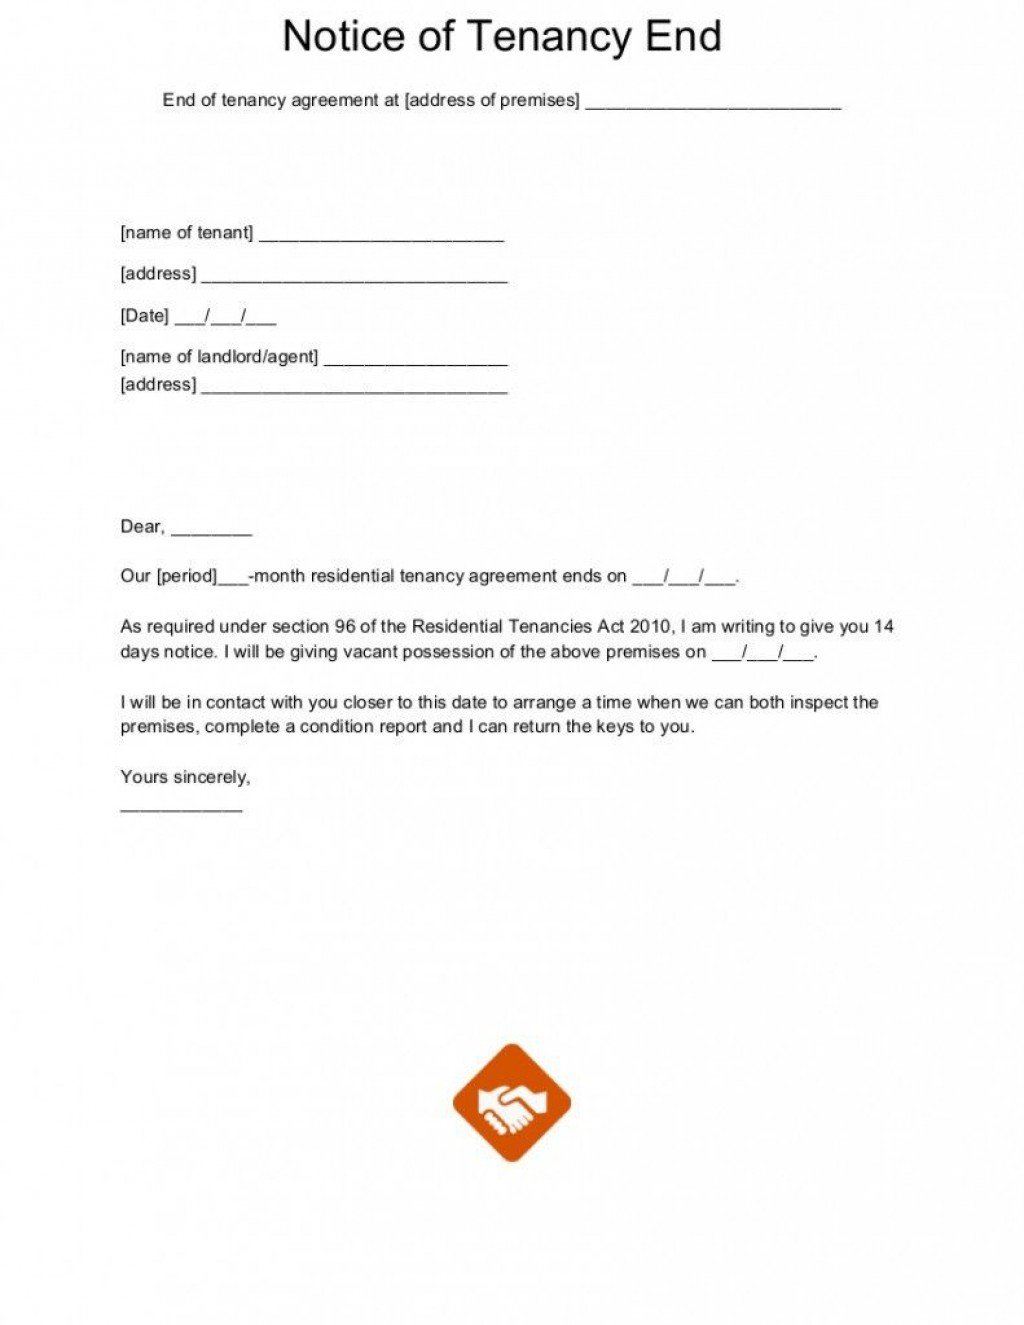 006 Surprising Sample Letter For Terminating A Lease Agreement  To End Tenancy From Landlord CancellingLarge